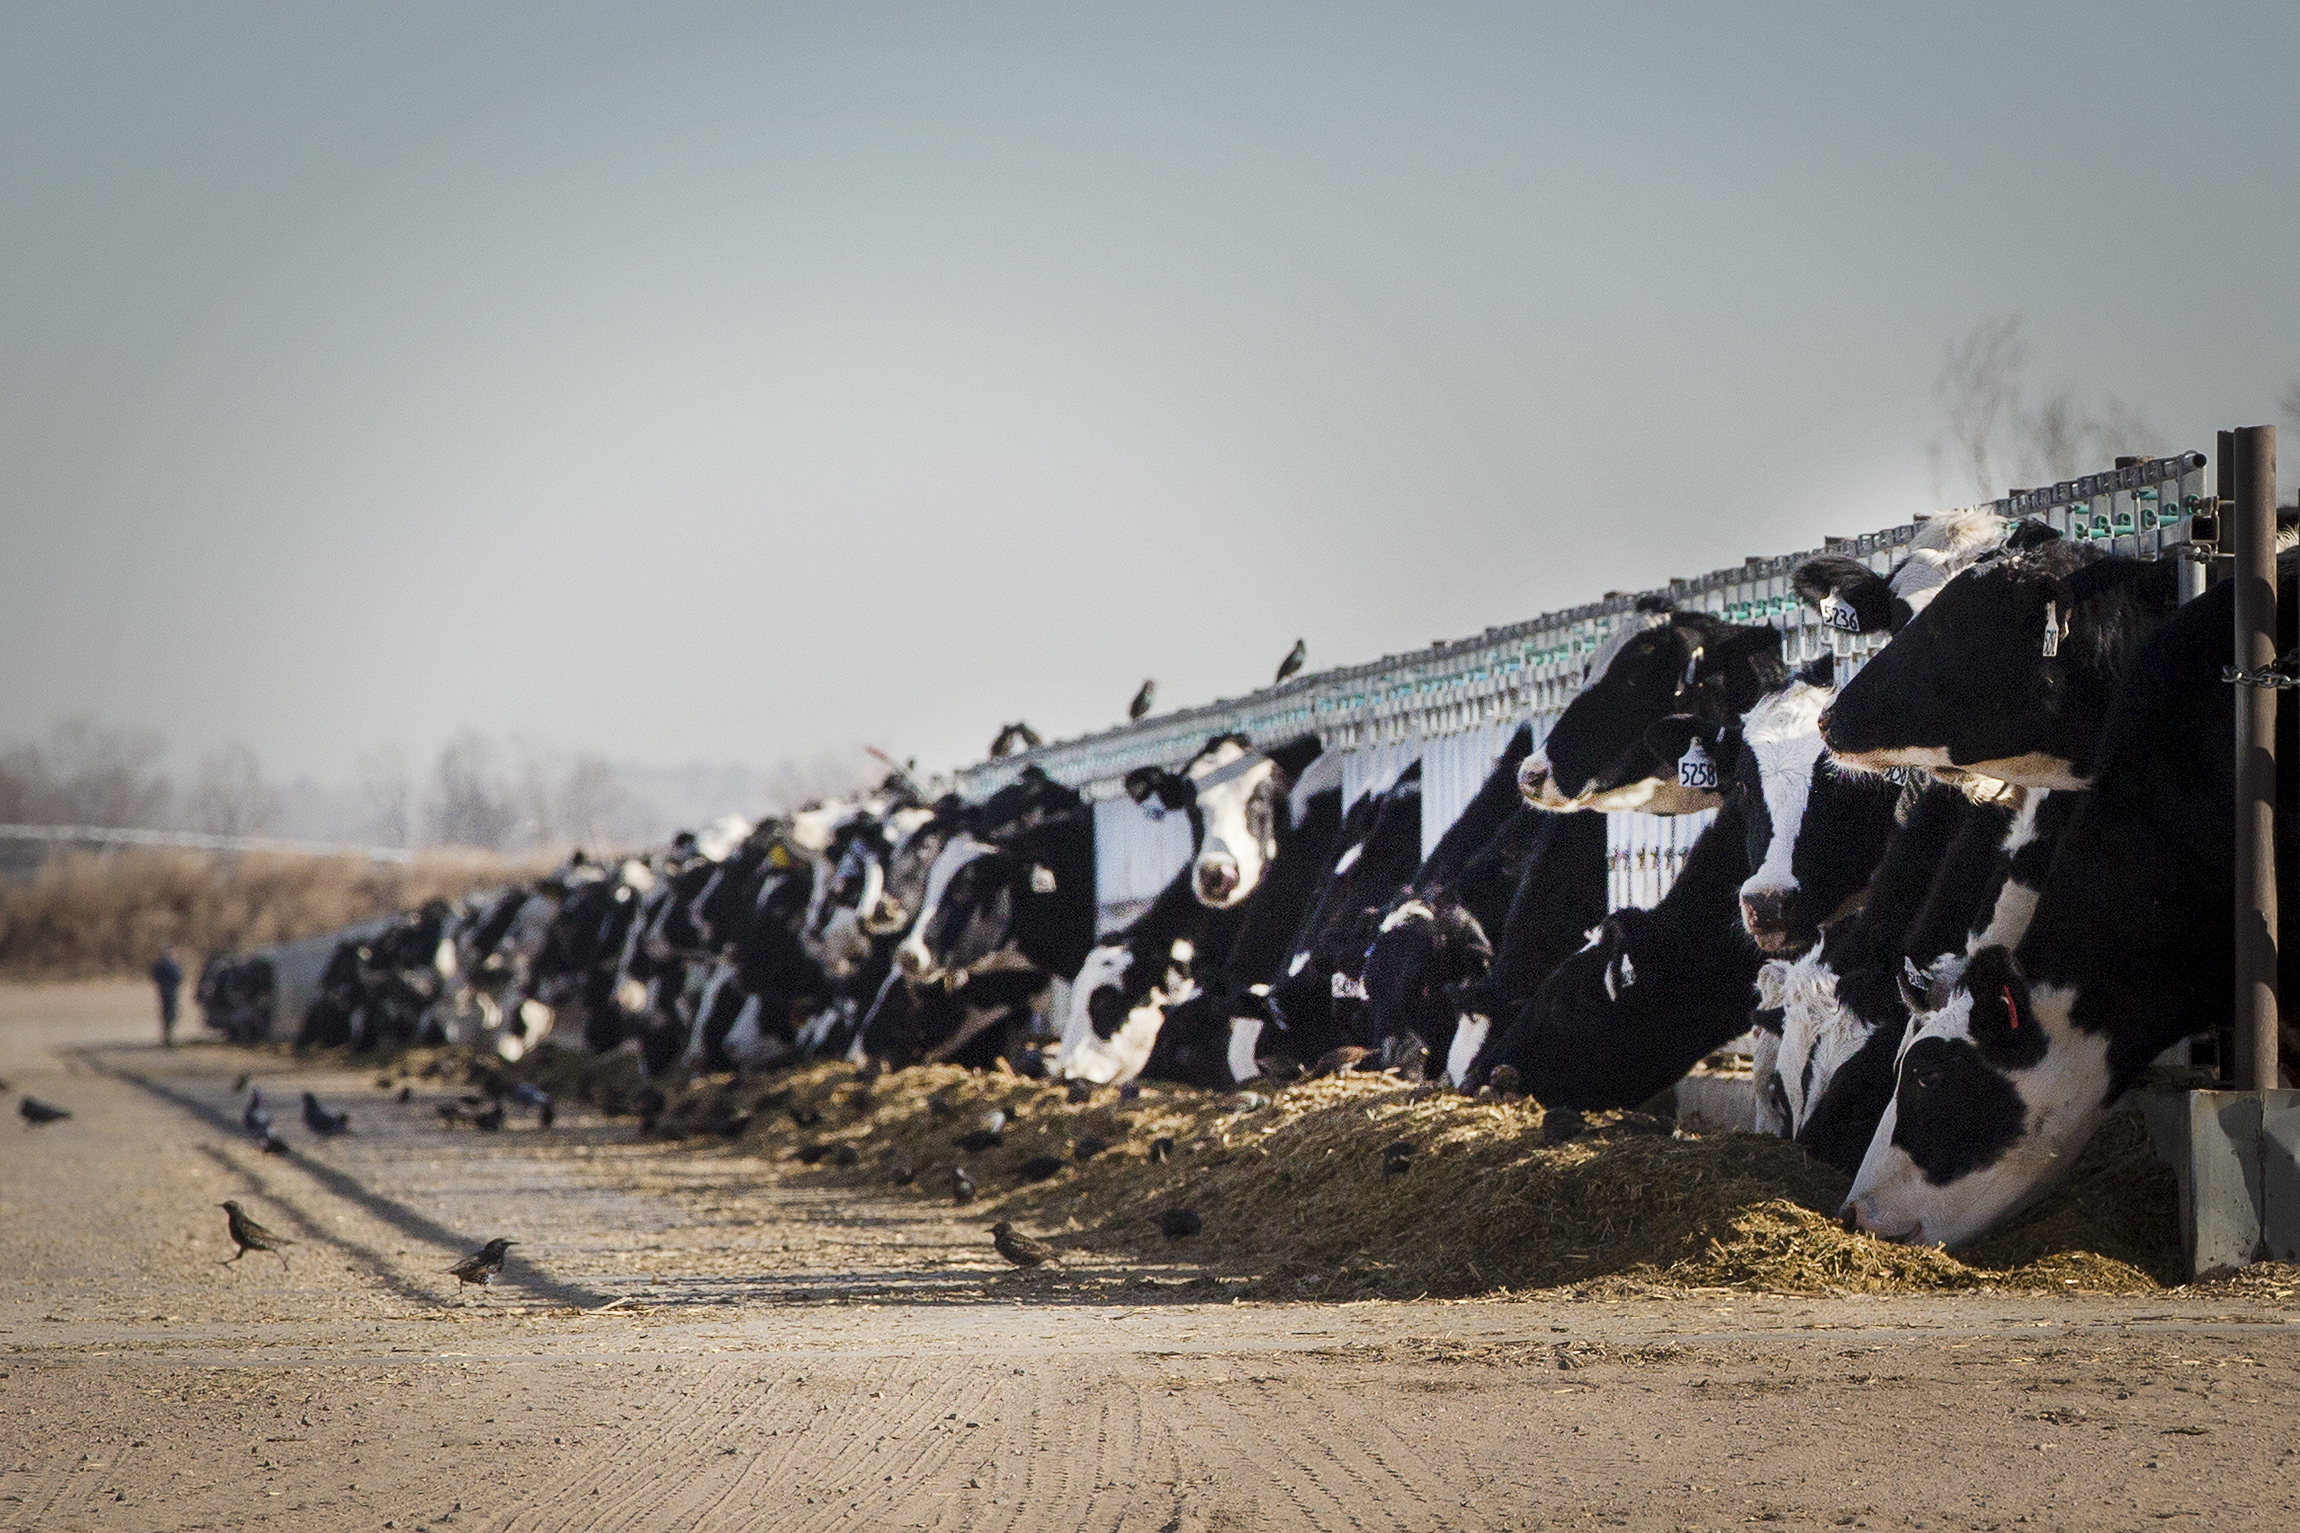 Dairy cattle west of La Salle in Weld County on Dec. 14, 2018.